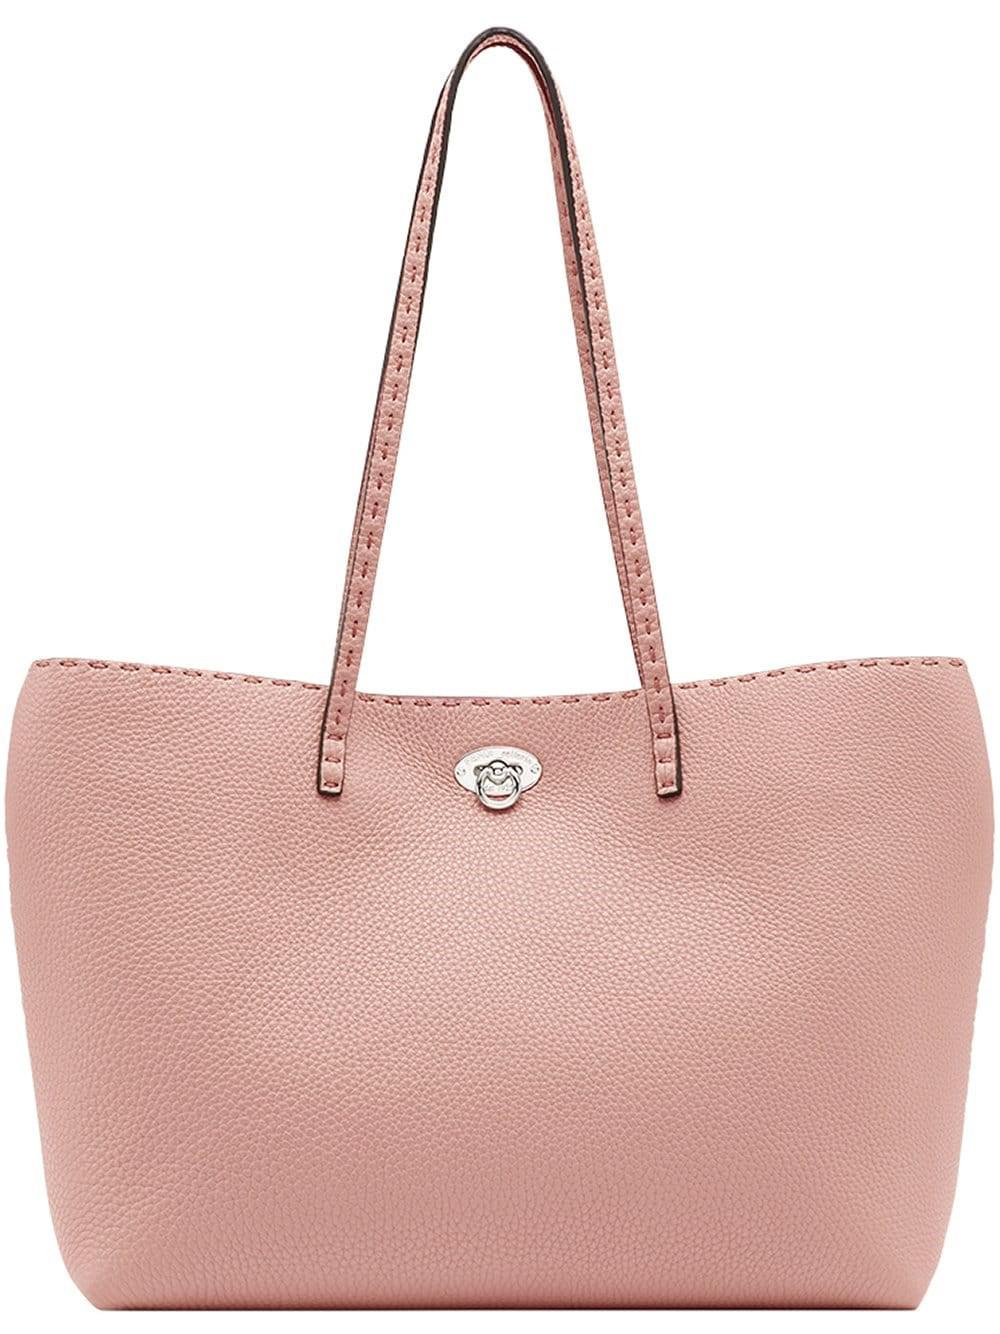 Lyst - Fendi Women s 8bh257q0jf13fb Pink Leather Tote in Pink e4e59897efd4b